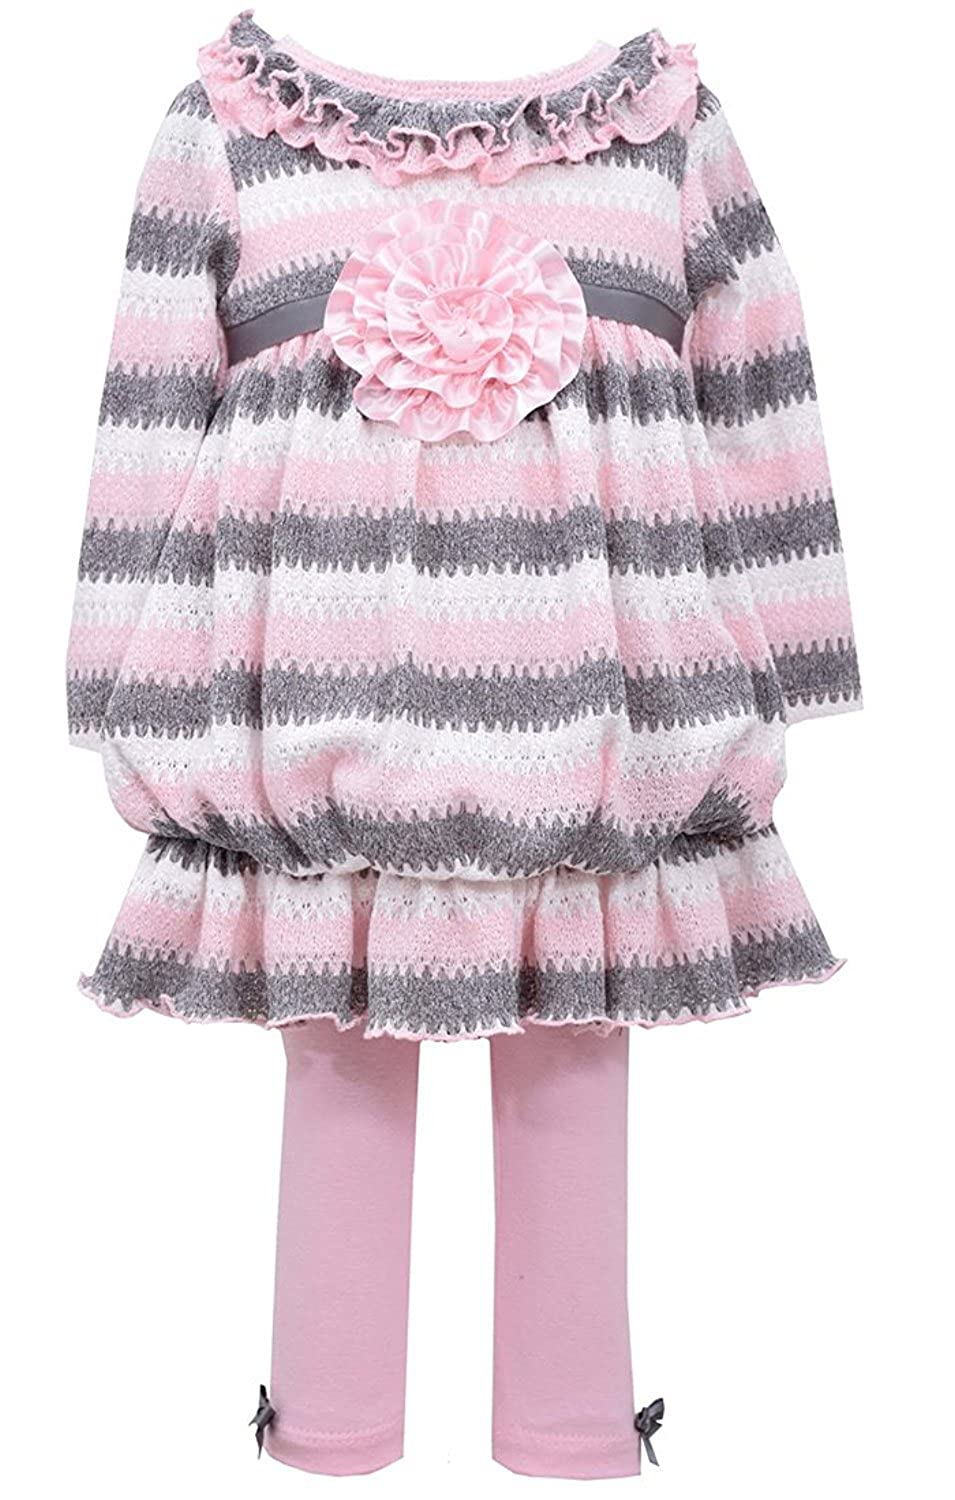 12m-4t Bonnie Jean Girls Pink and Grey Knit Top and Leggings